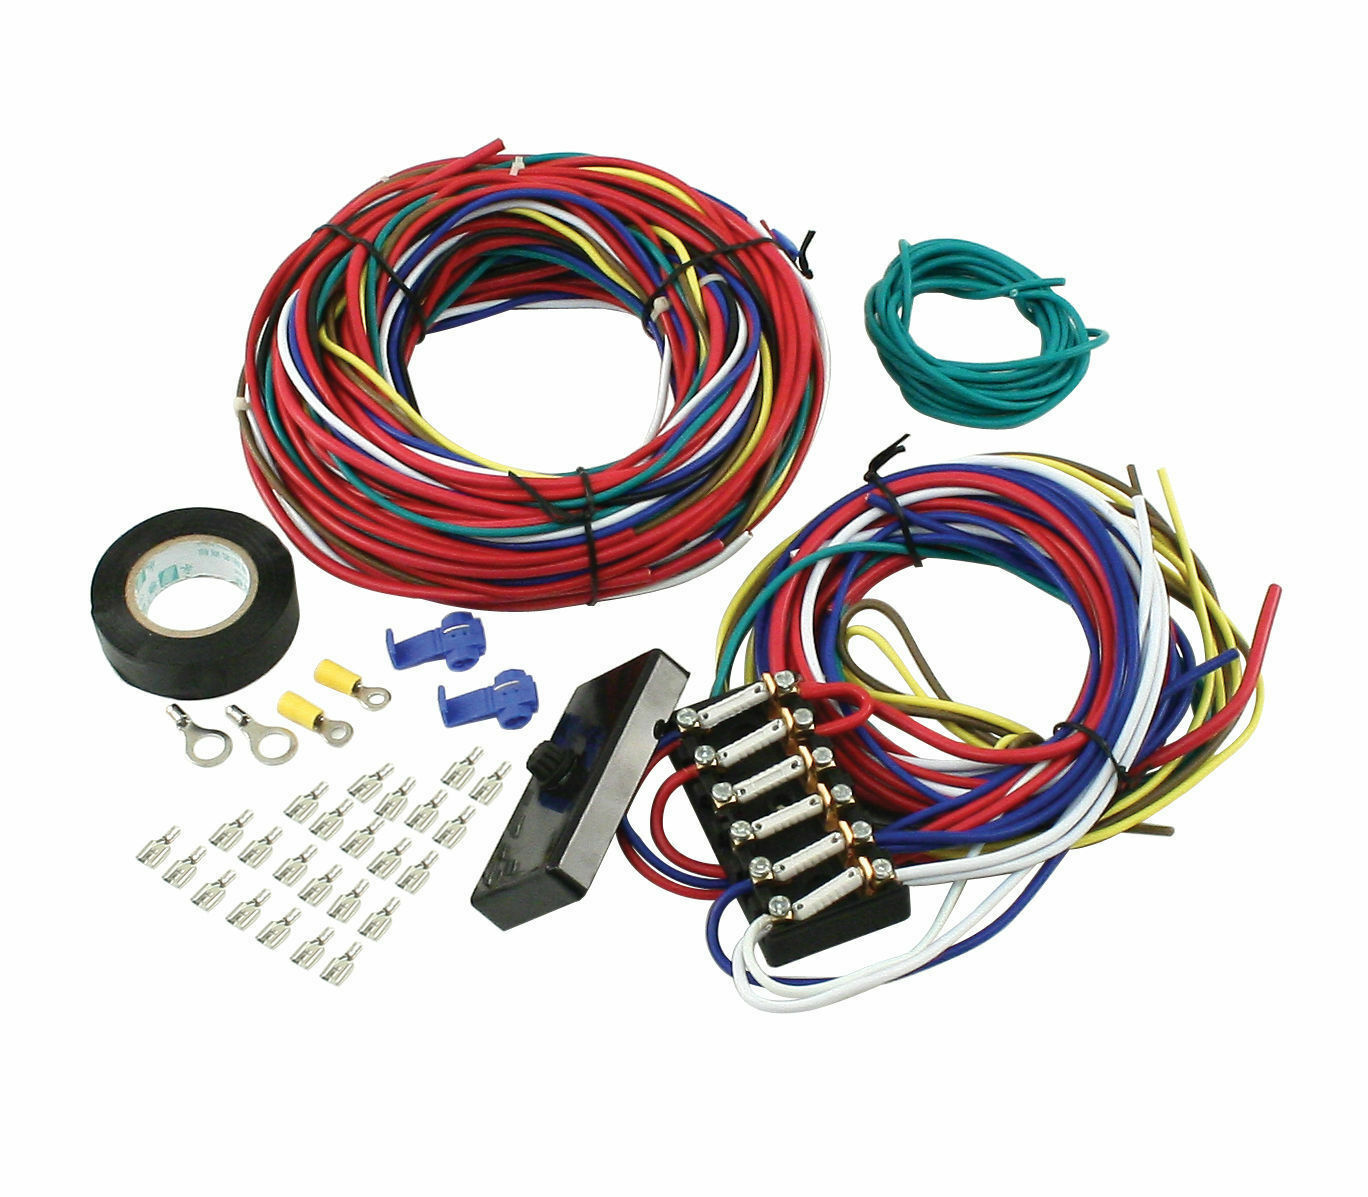 dune buggy wiring harness, sand rail vw trike, vw kit car wiring dune buggy wiring harness 1 of 3only 5 available